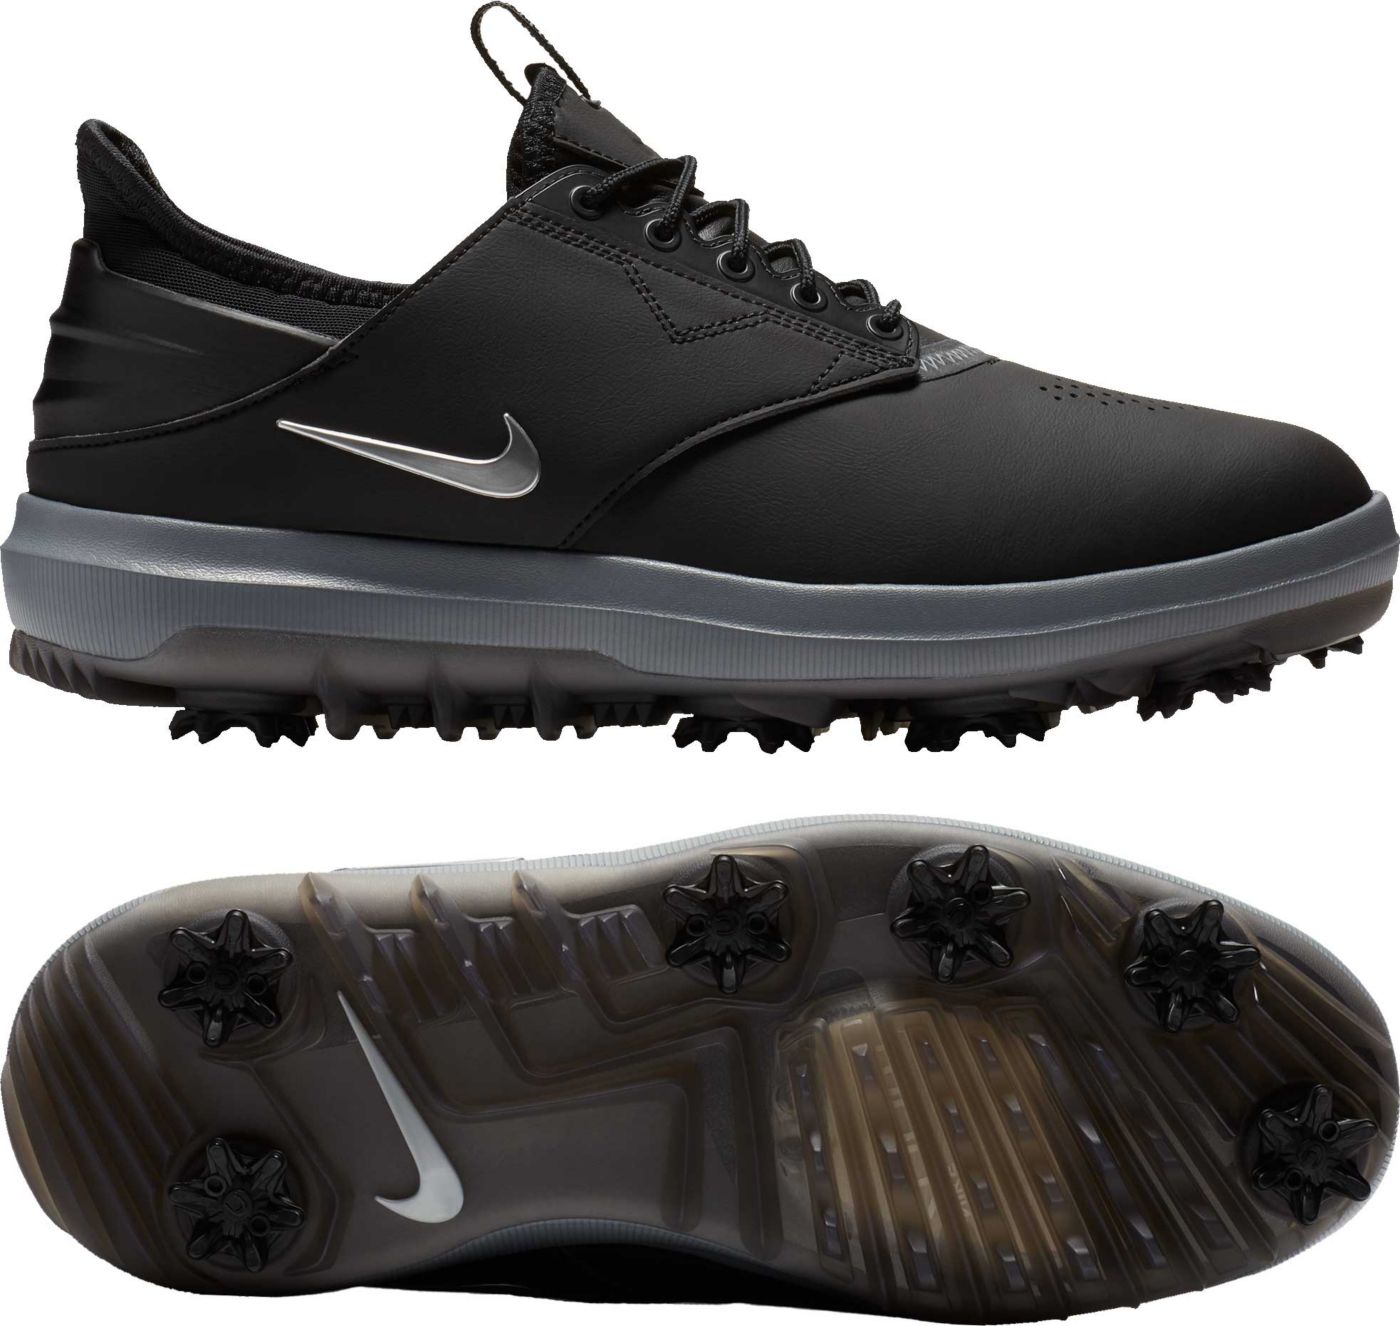 Nike Men's Air Zoom Direct Shoes